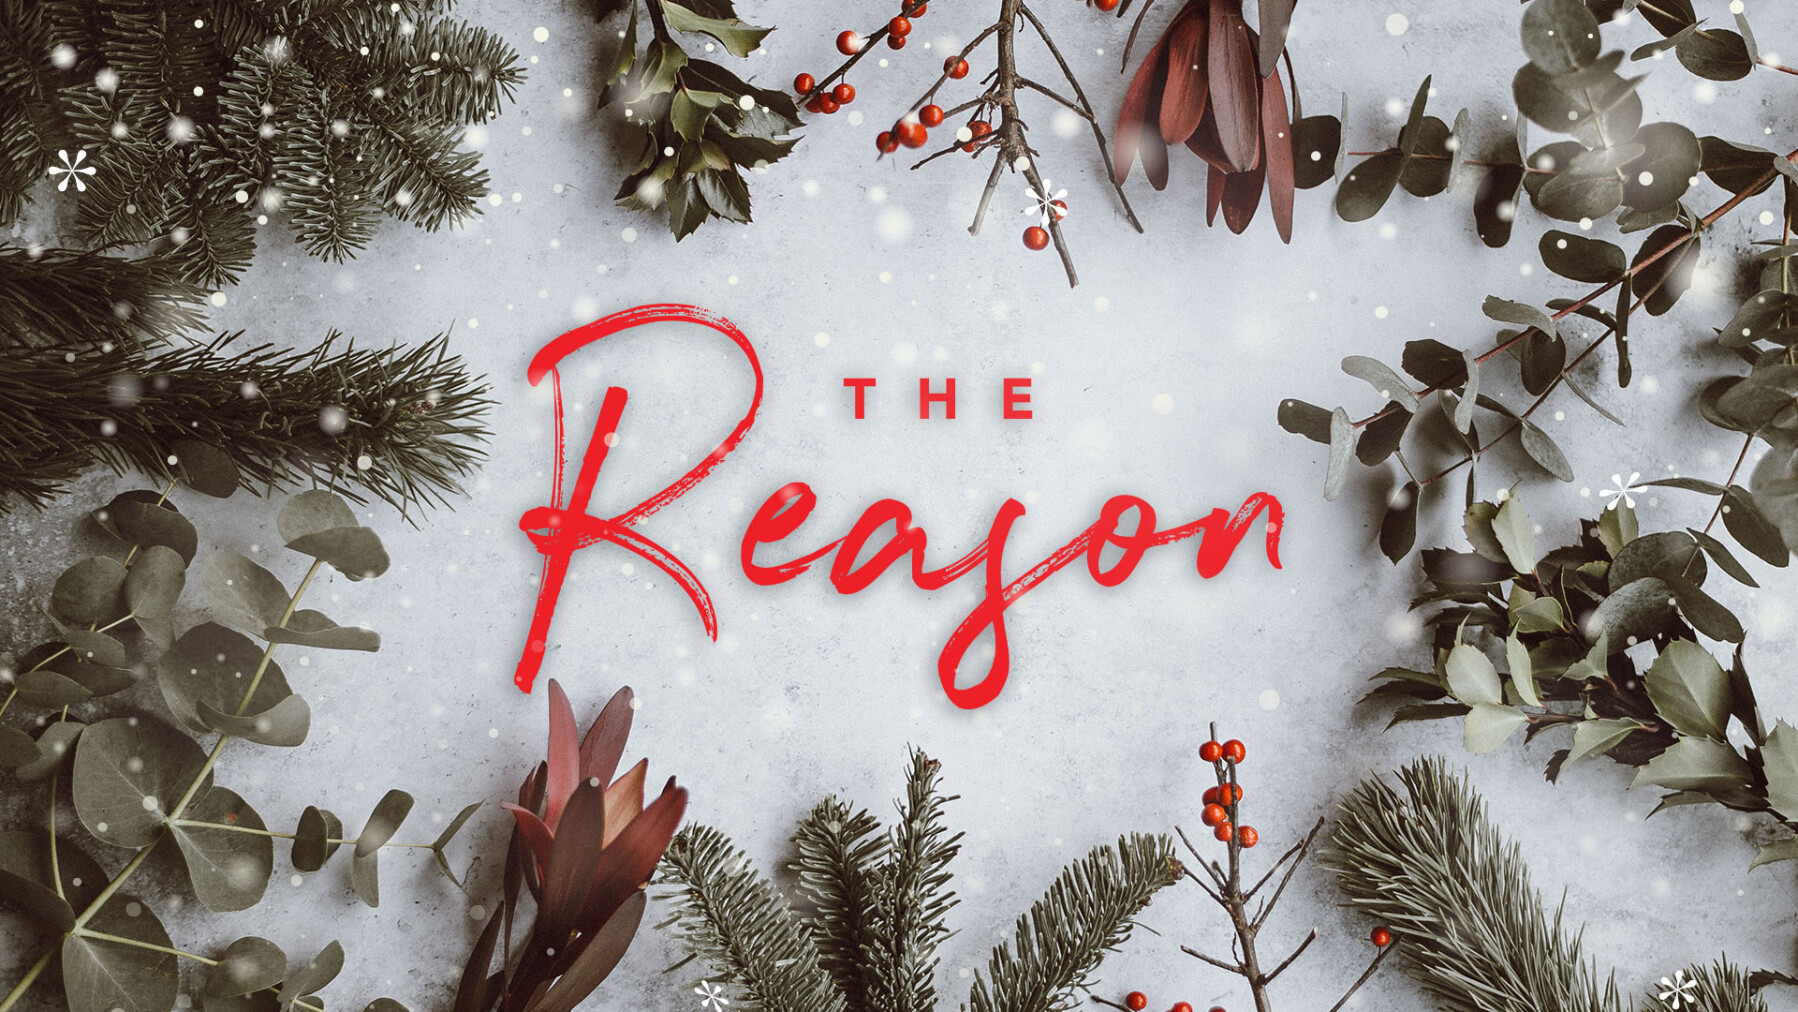 The Reason - Christmas Services 2018